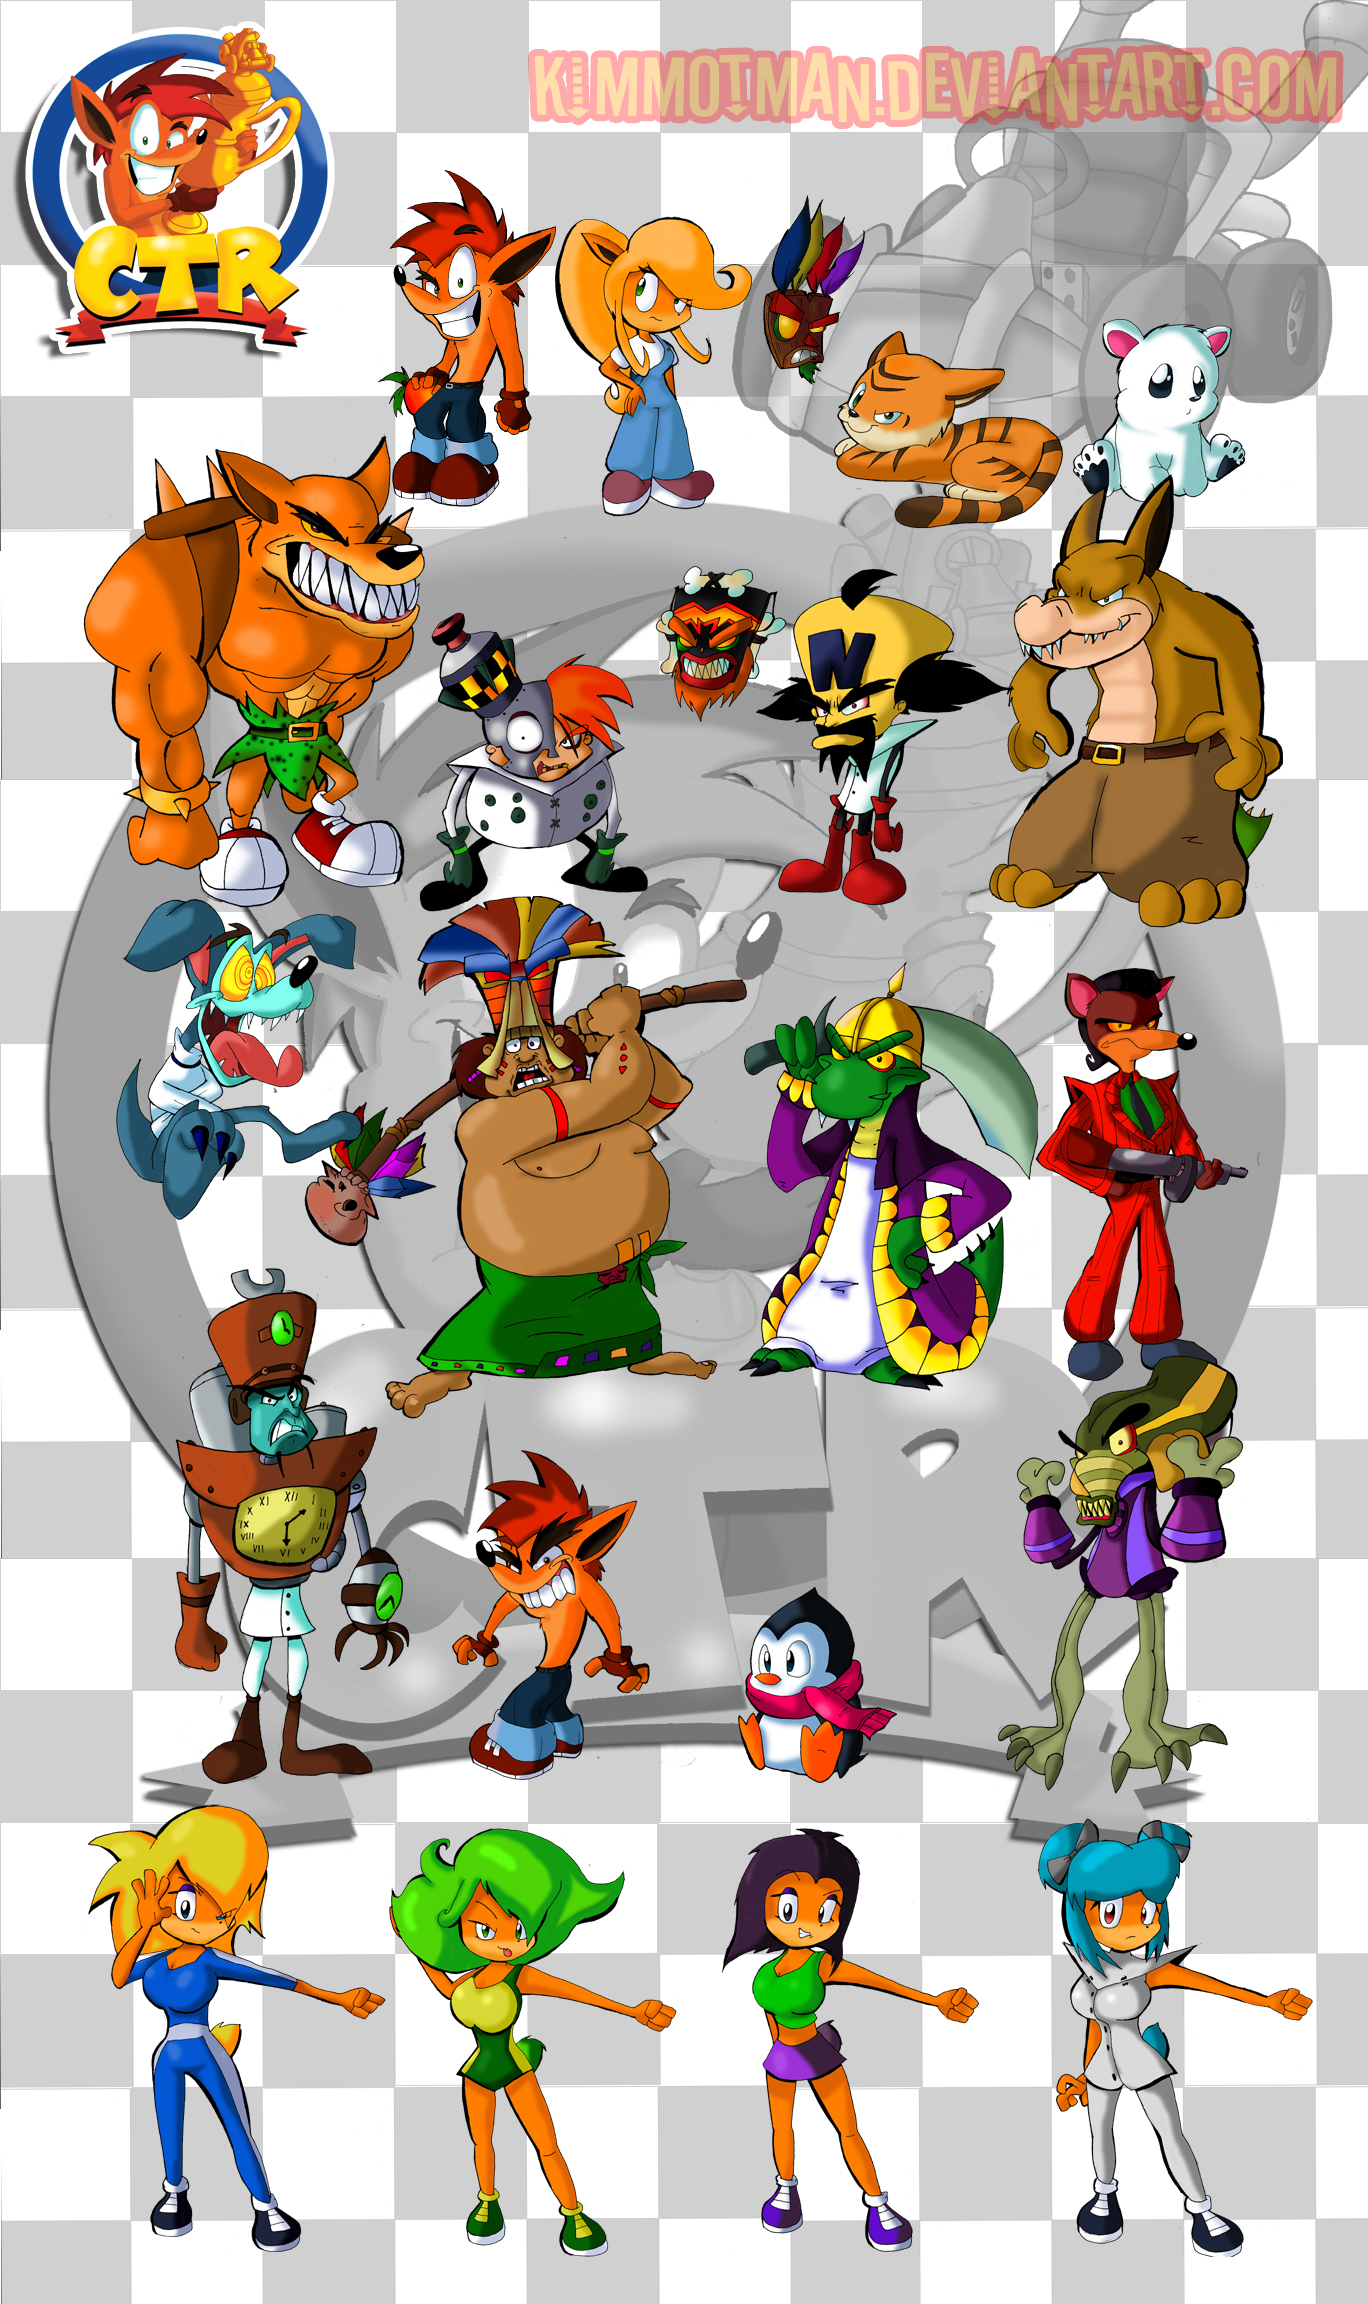 crash bandicoot game image 1087388 zerochan anime image board